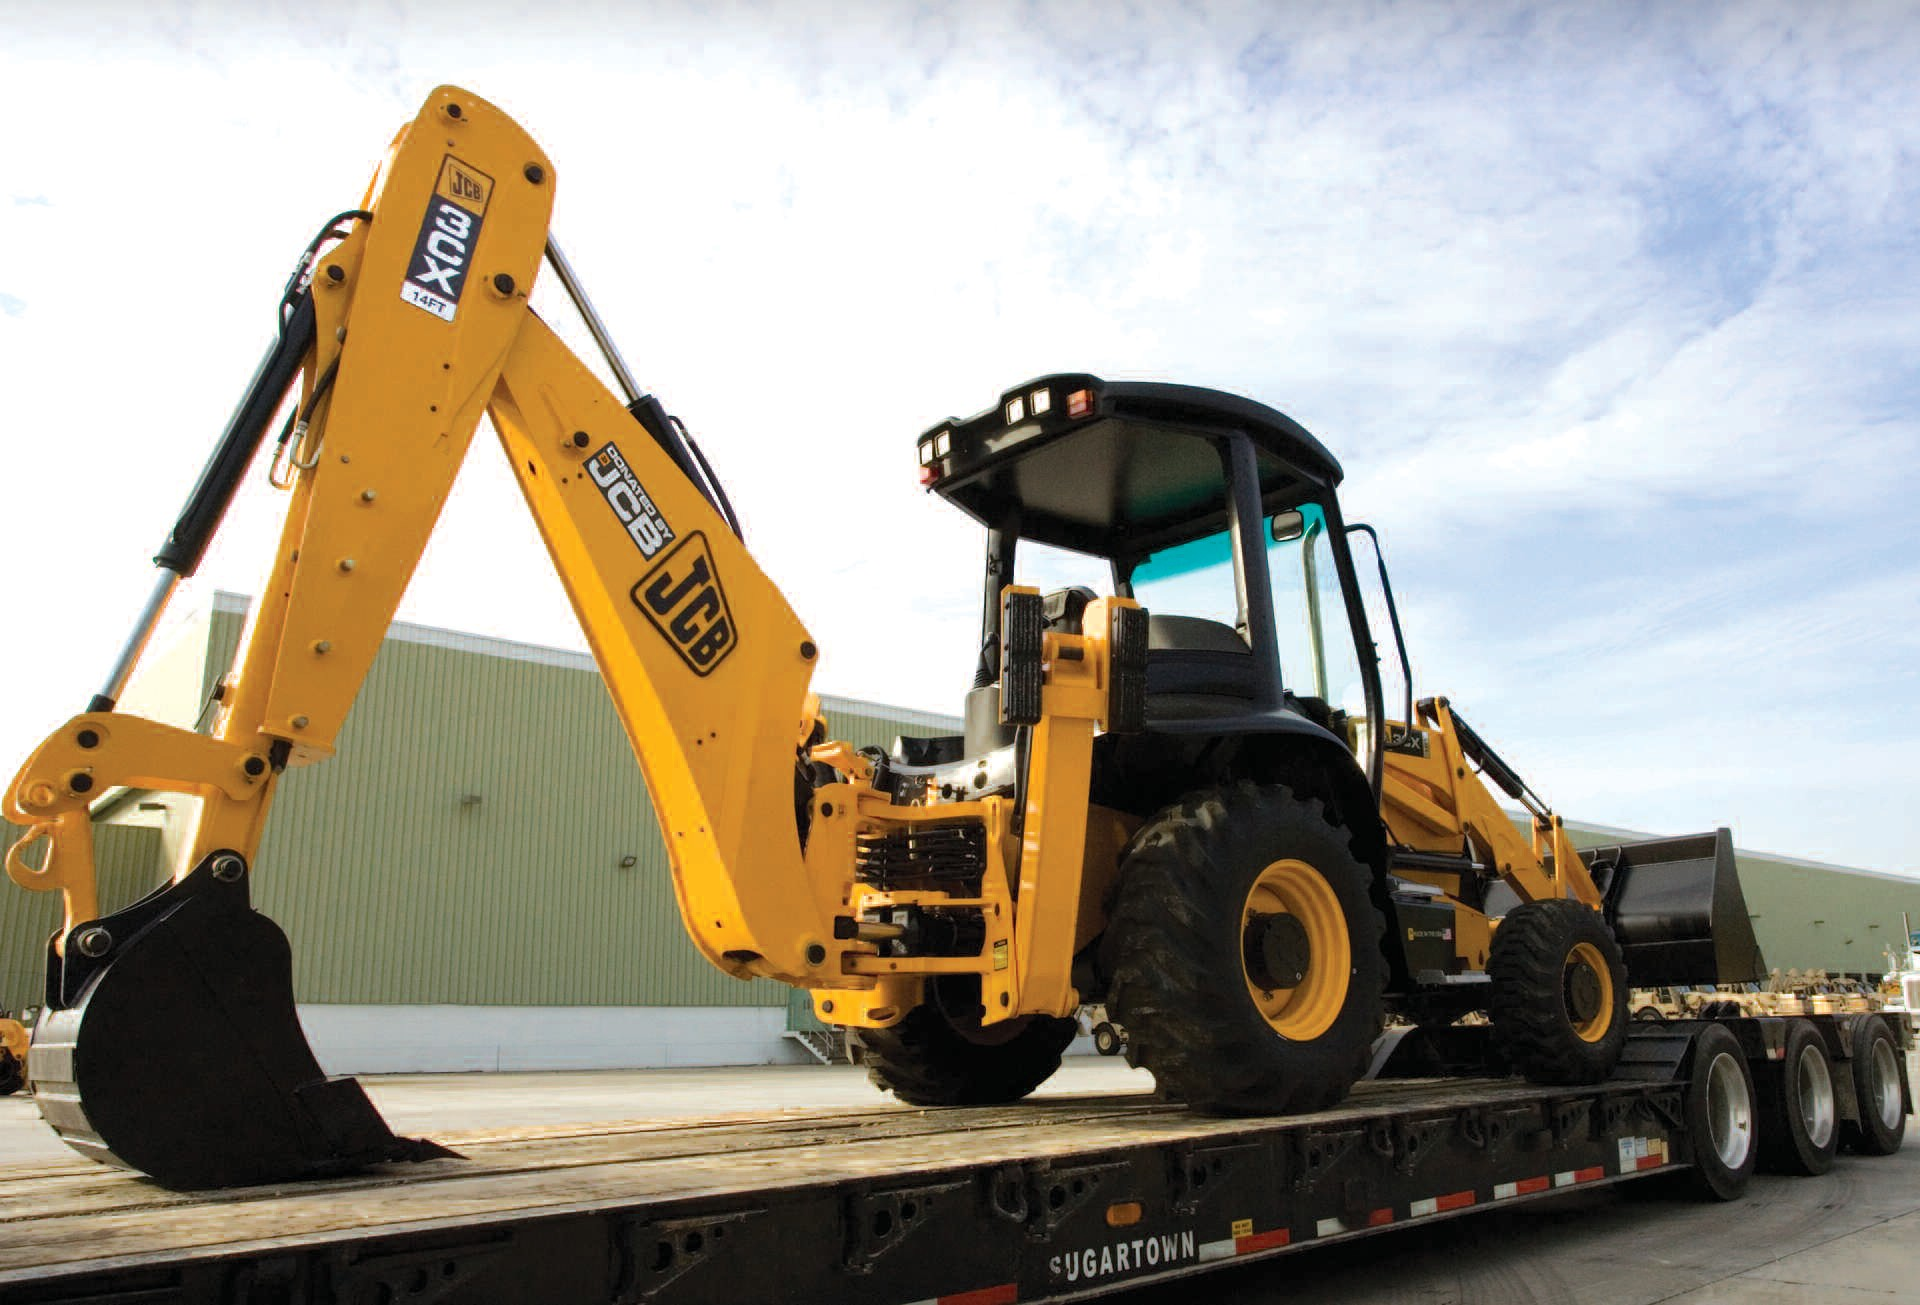 JCB is donating this equipment to be sent to Haiti to help with disaster relief